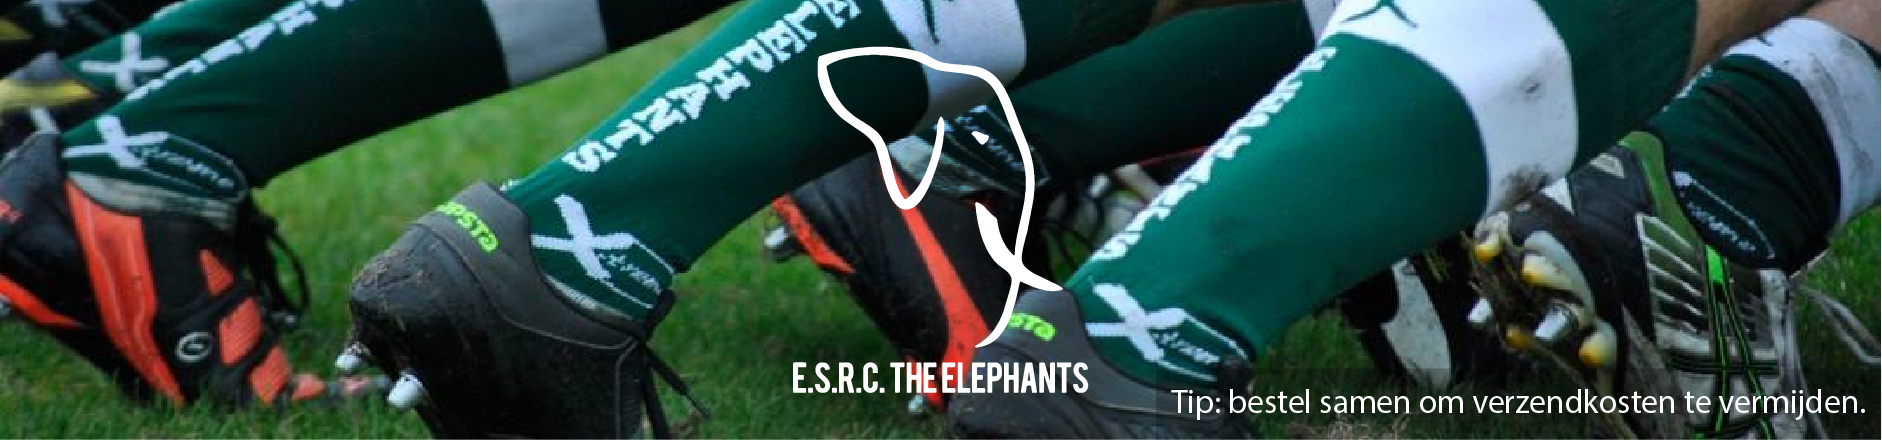 ESRC The Elephants